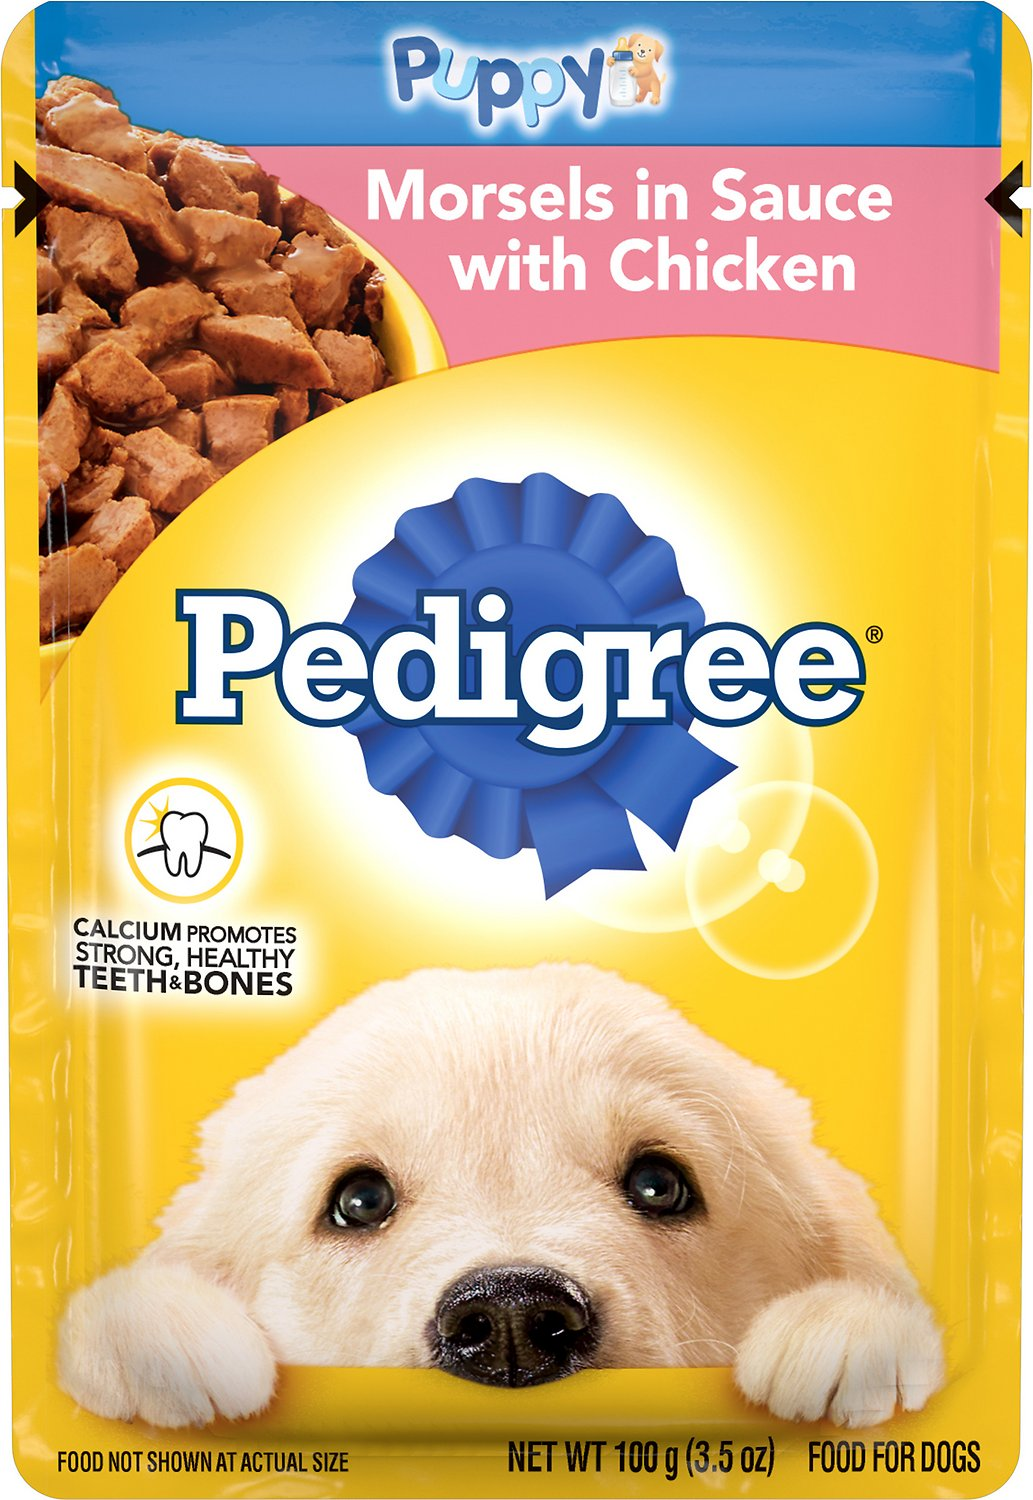 Pedigree Choice Cuts Puppy Morsels In Sauce With Chicken Wet Dog